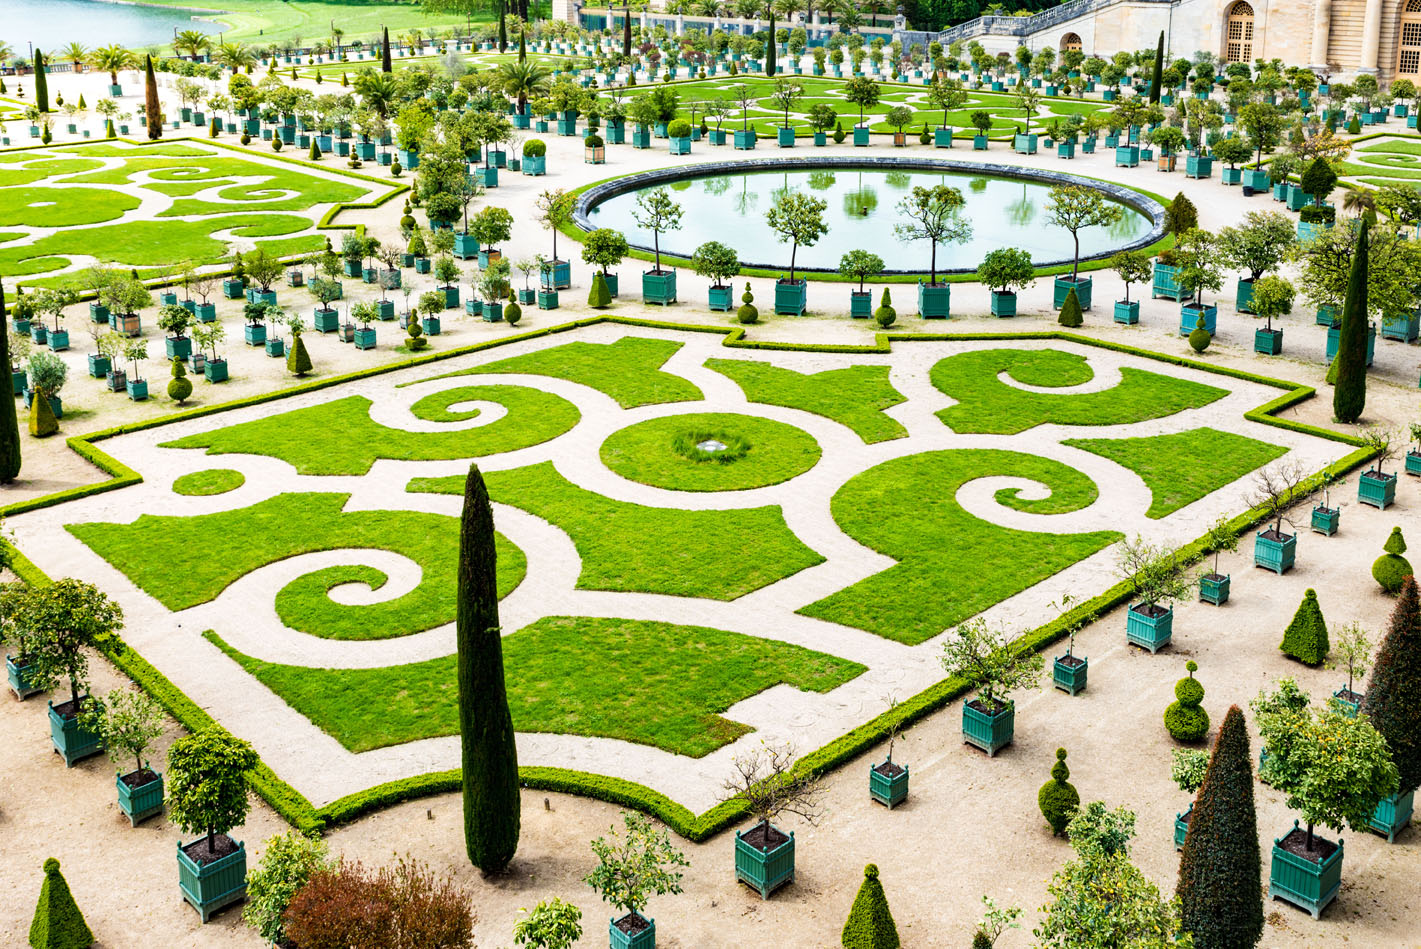 Orangery at the Palace Versailles, near Paris, France. Takashi images/Shutterstock.